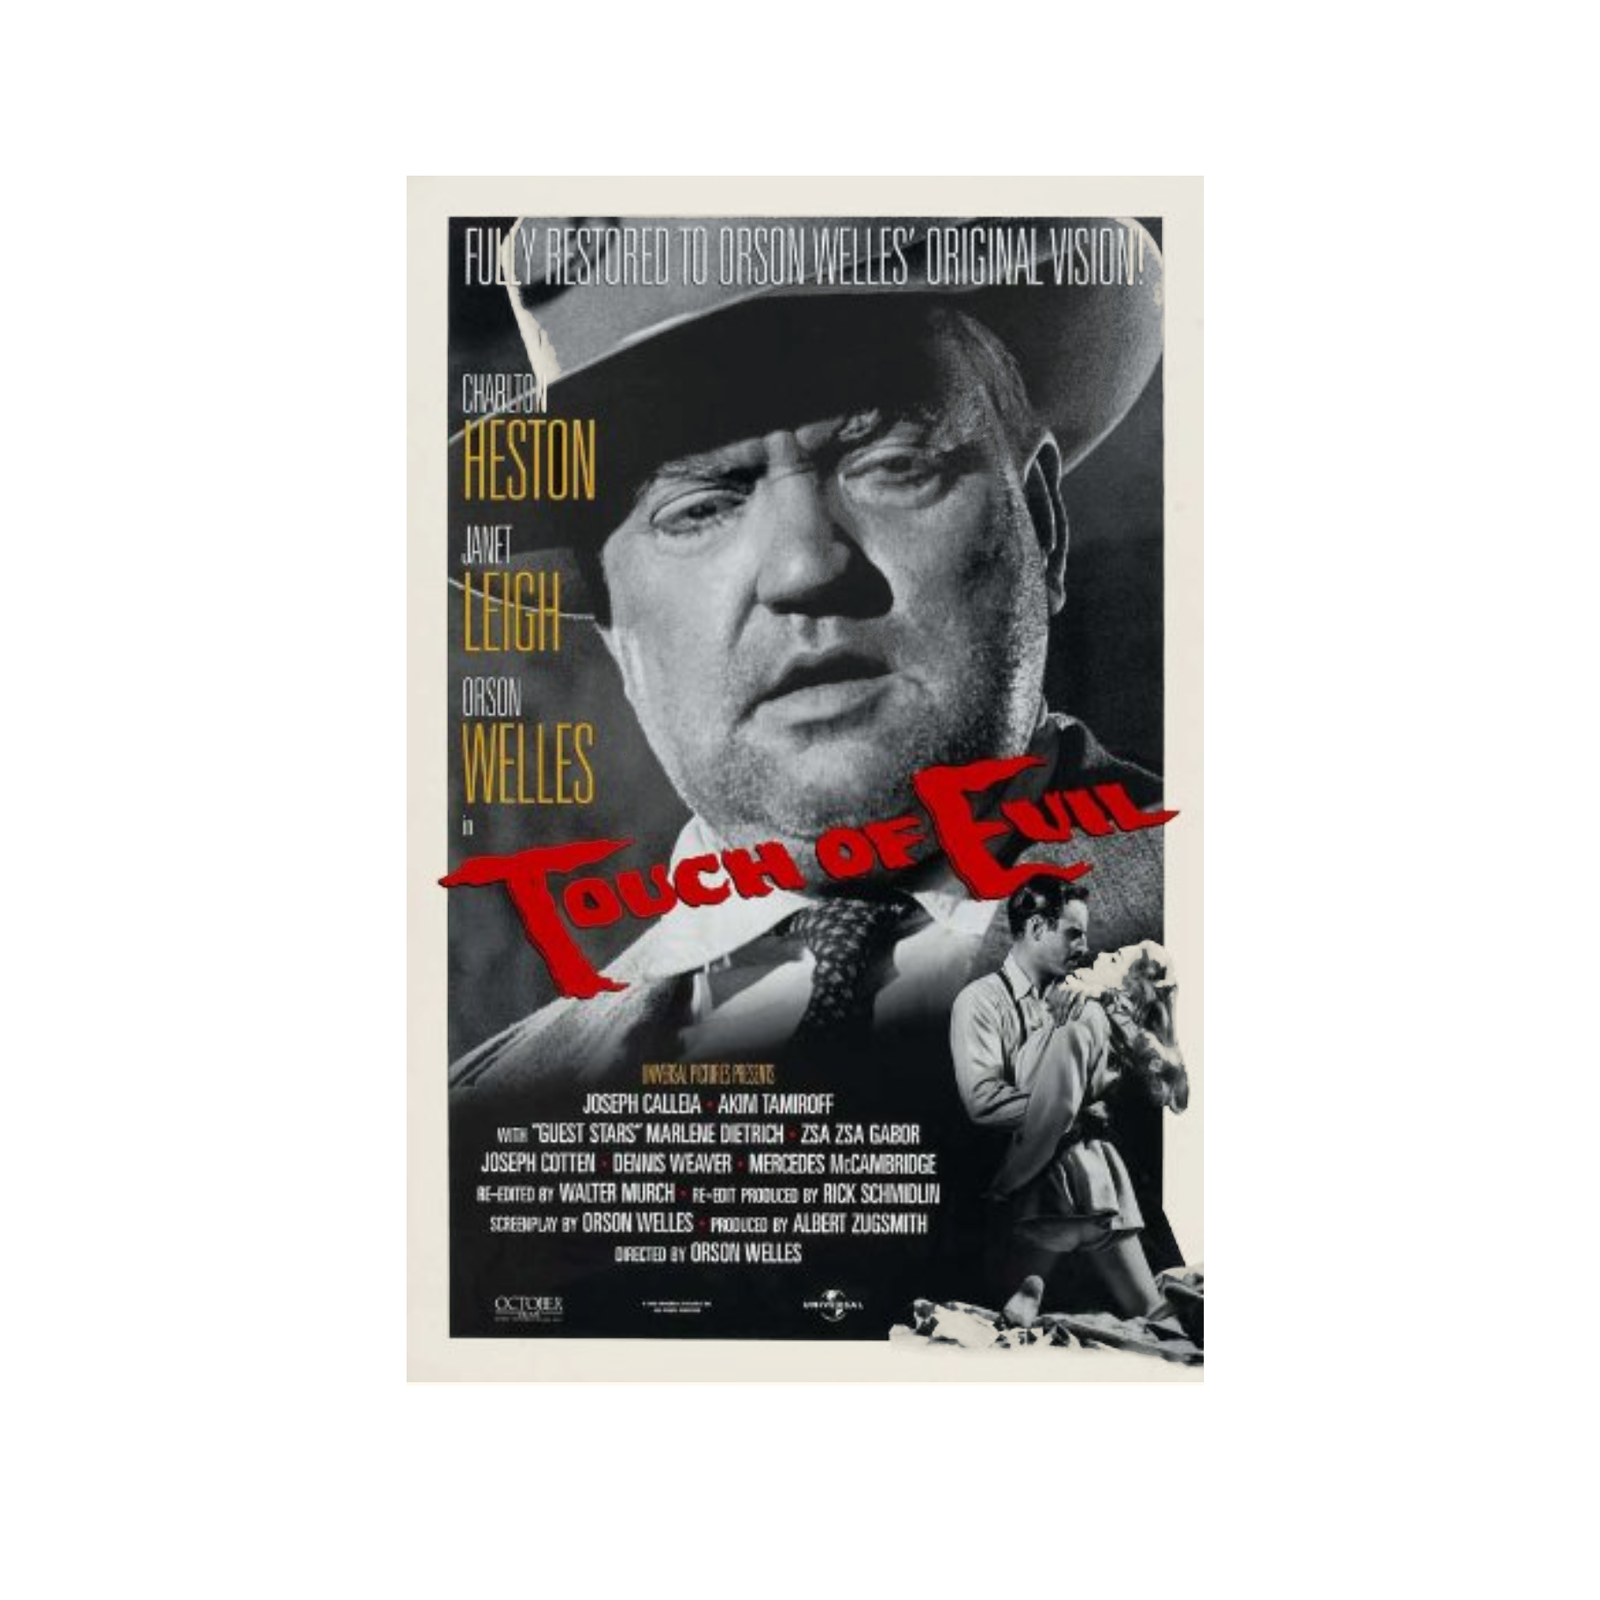 1998 TOUCH OF EVIL Movie POSTER 27x40 40th Ann Release Orson Welles Single-Sided